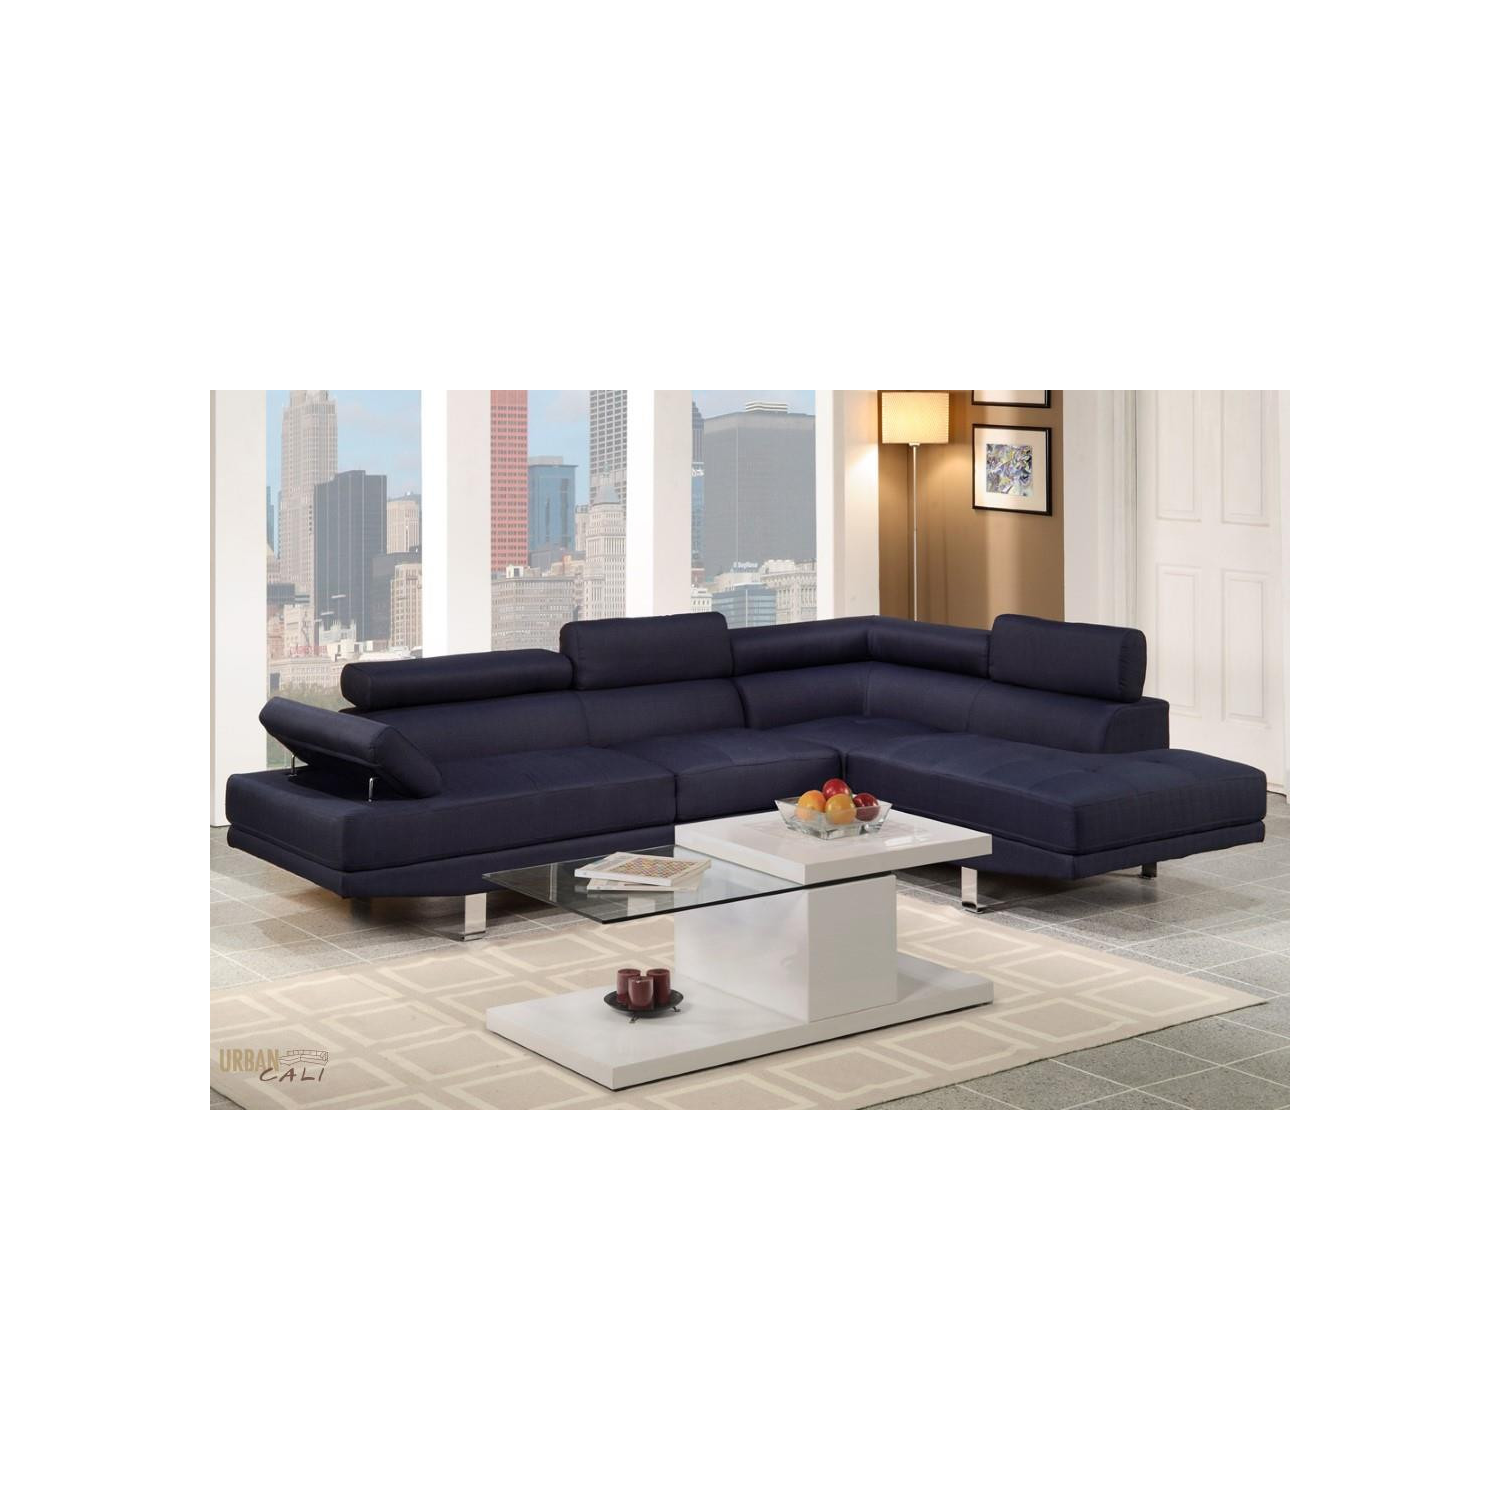 Beautiful hollywood blue linen adjustable sectional sofa for Hollywood white faux leather adjustable sectional sofa by urban cali